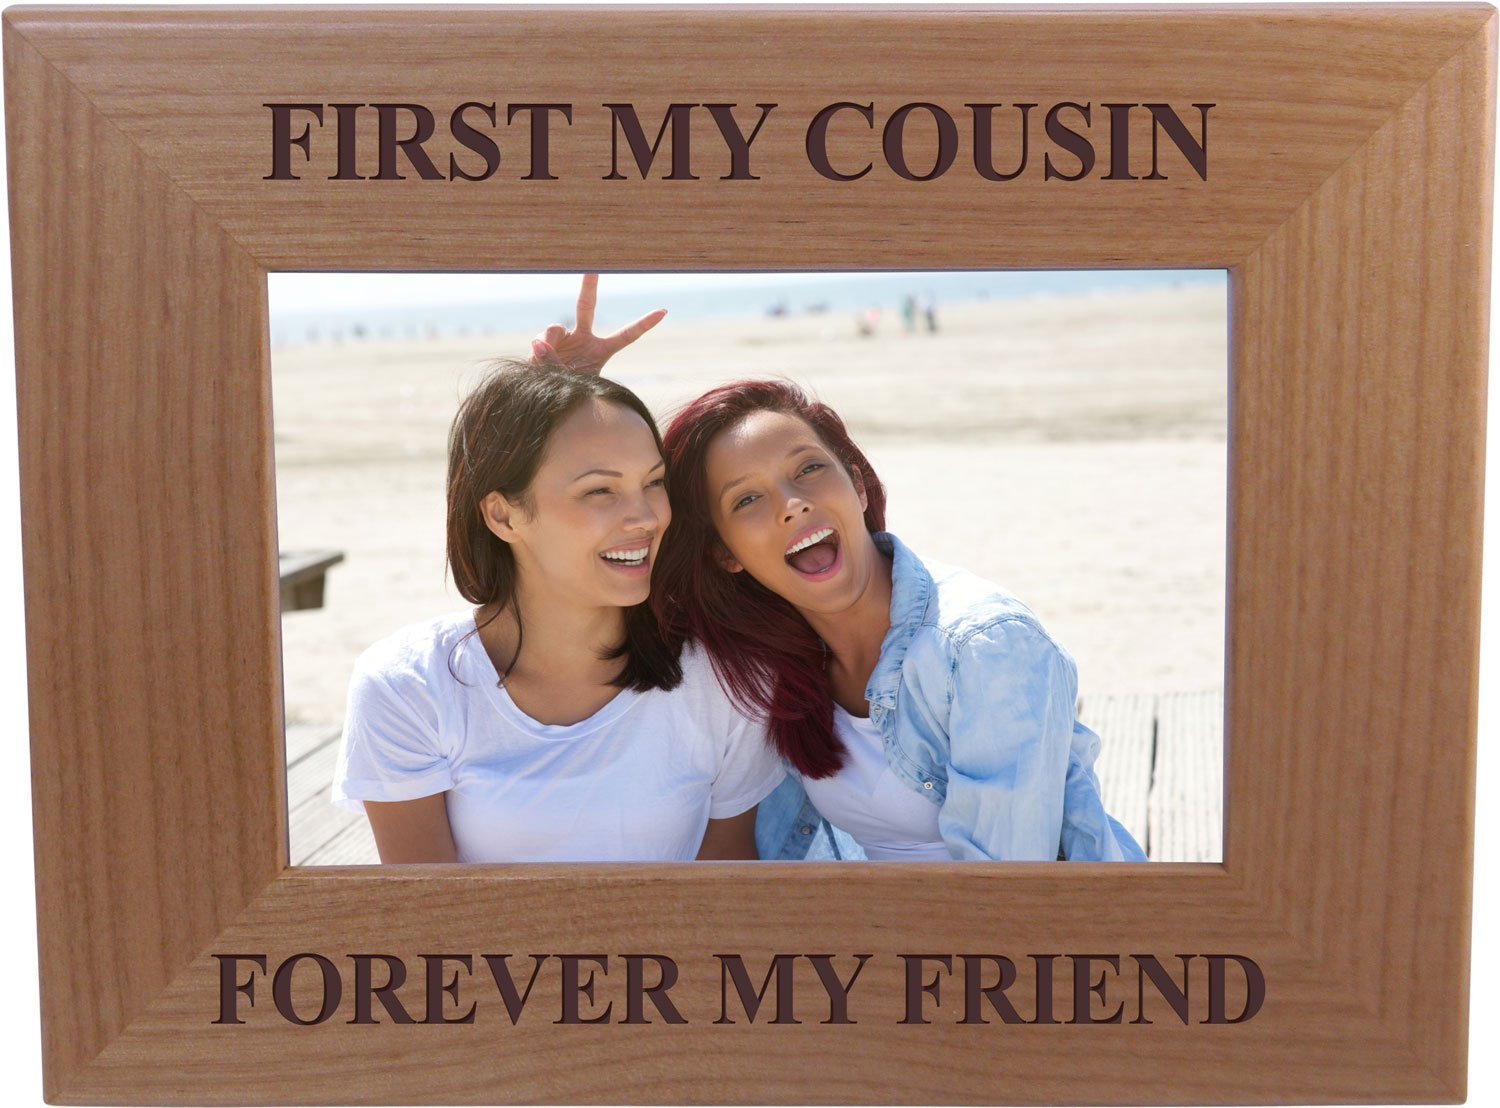 First My Cousin Forever My Friend Great Gift for cousins 4x6 Inch Wood Picture Frame